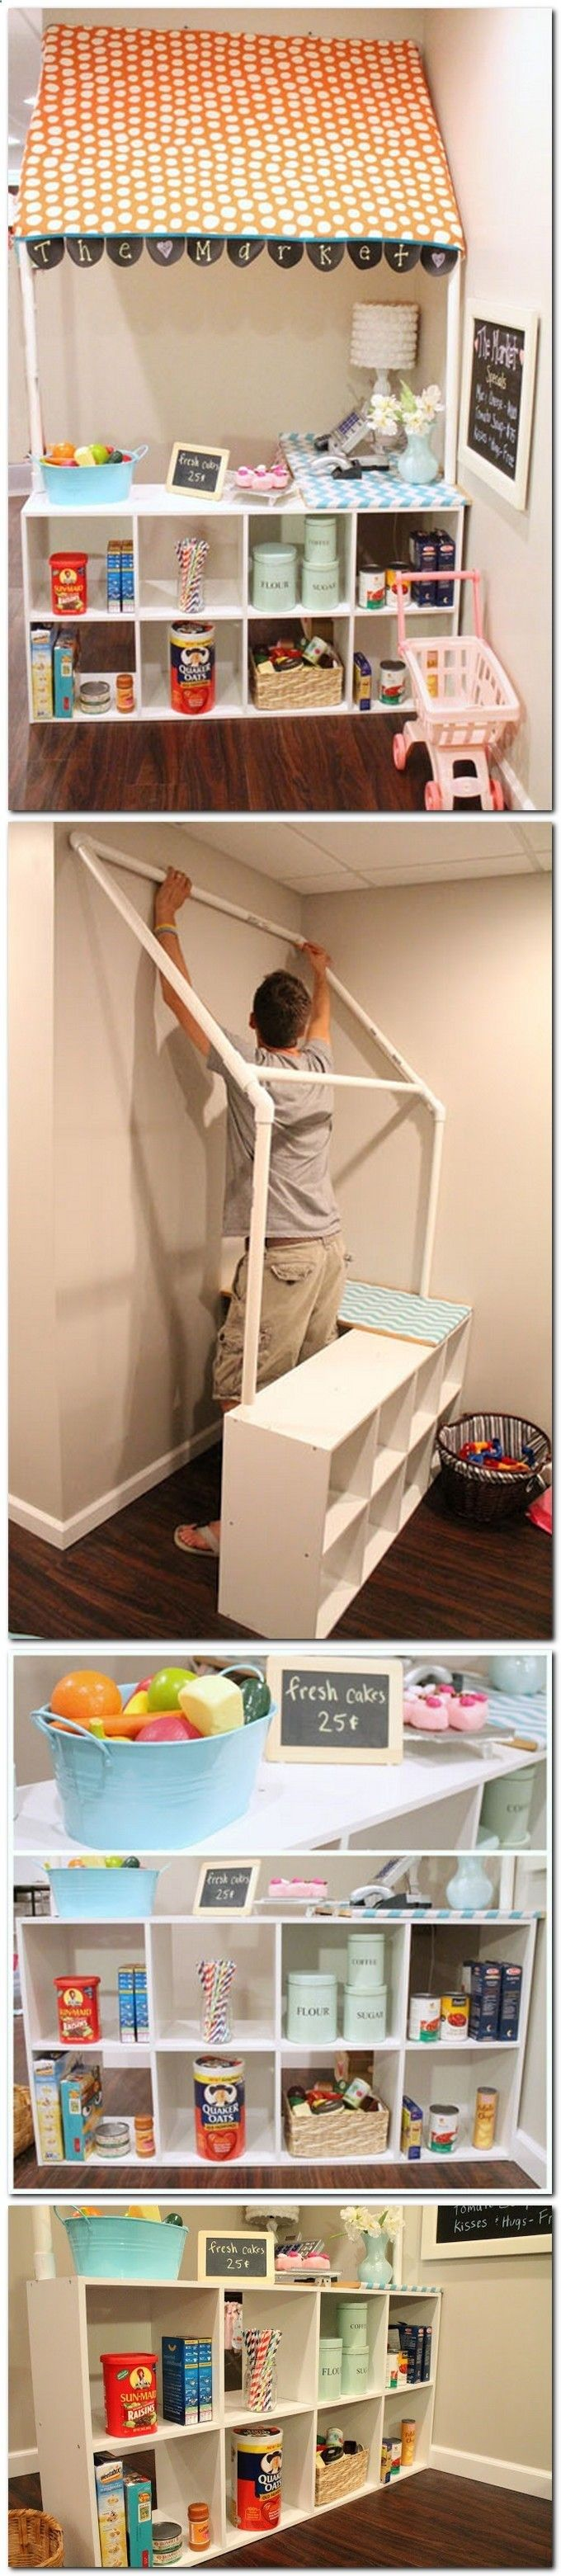 DIY Childrens grocery store - would be cute for a reading corner or play kitchen